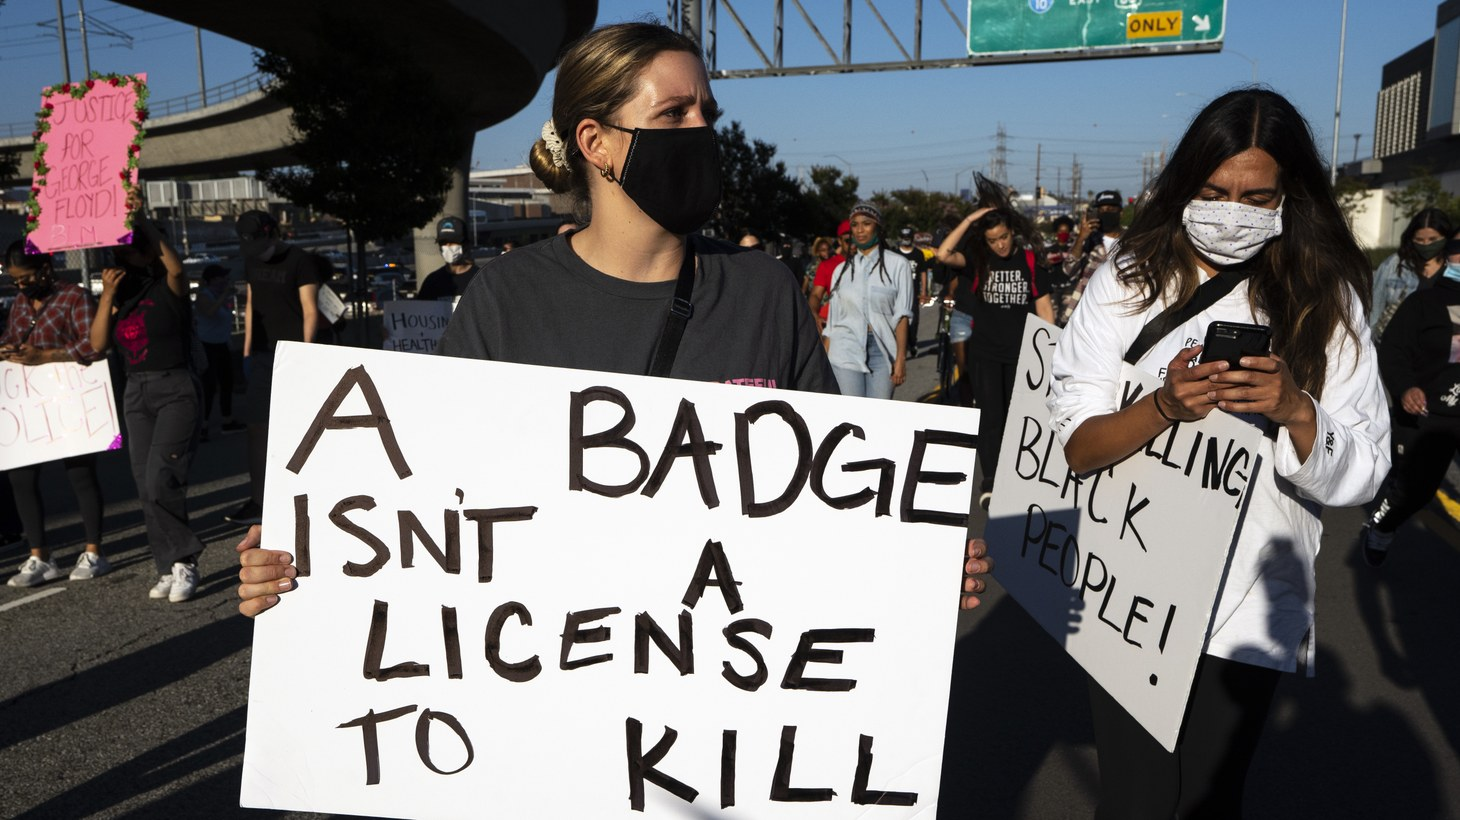 Demonstrators participate in an anti-police brutality protest following the killing of George Floyd in Minnesota by a white police officer. Los Angeles, California on May 27, 2020.